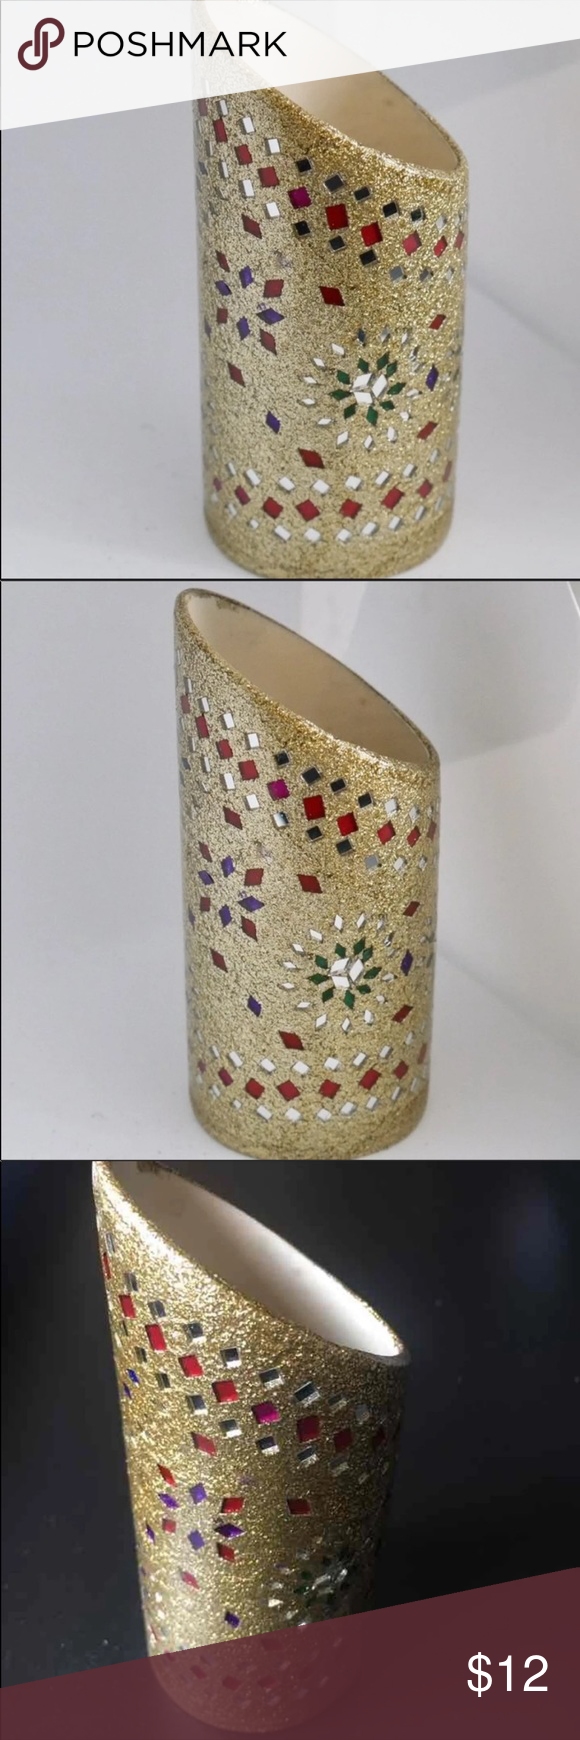 Glitter Mirror work Indian Makeup Cup This is brand new